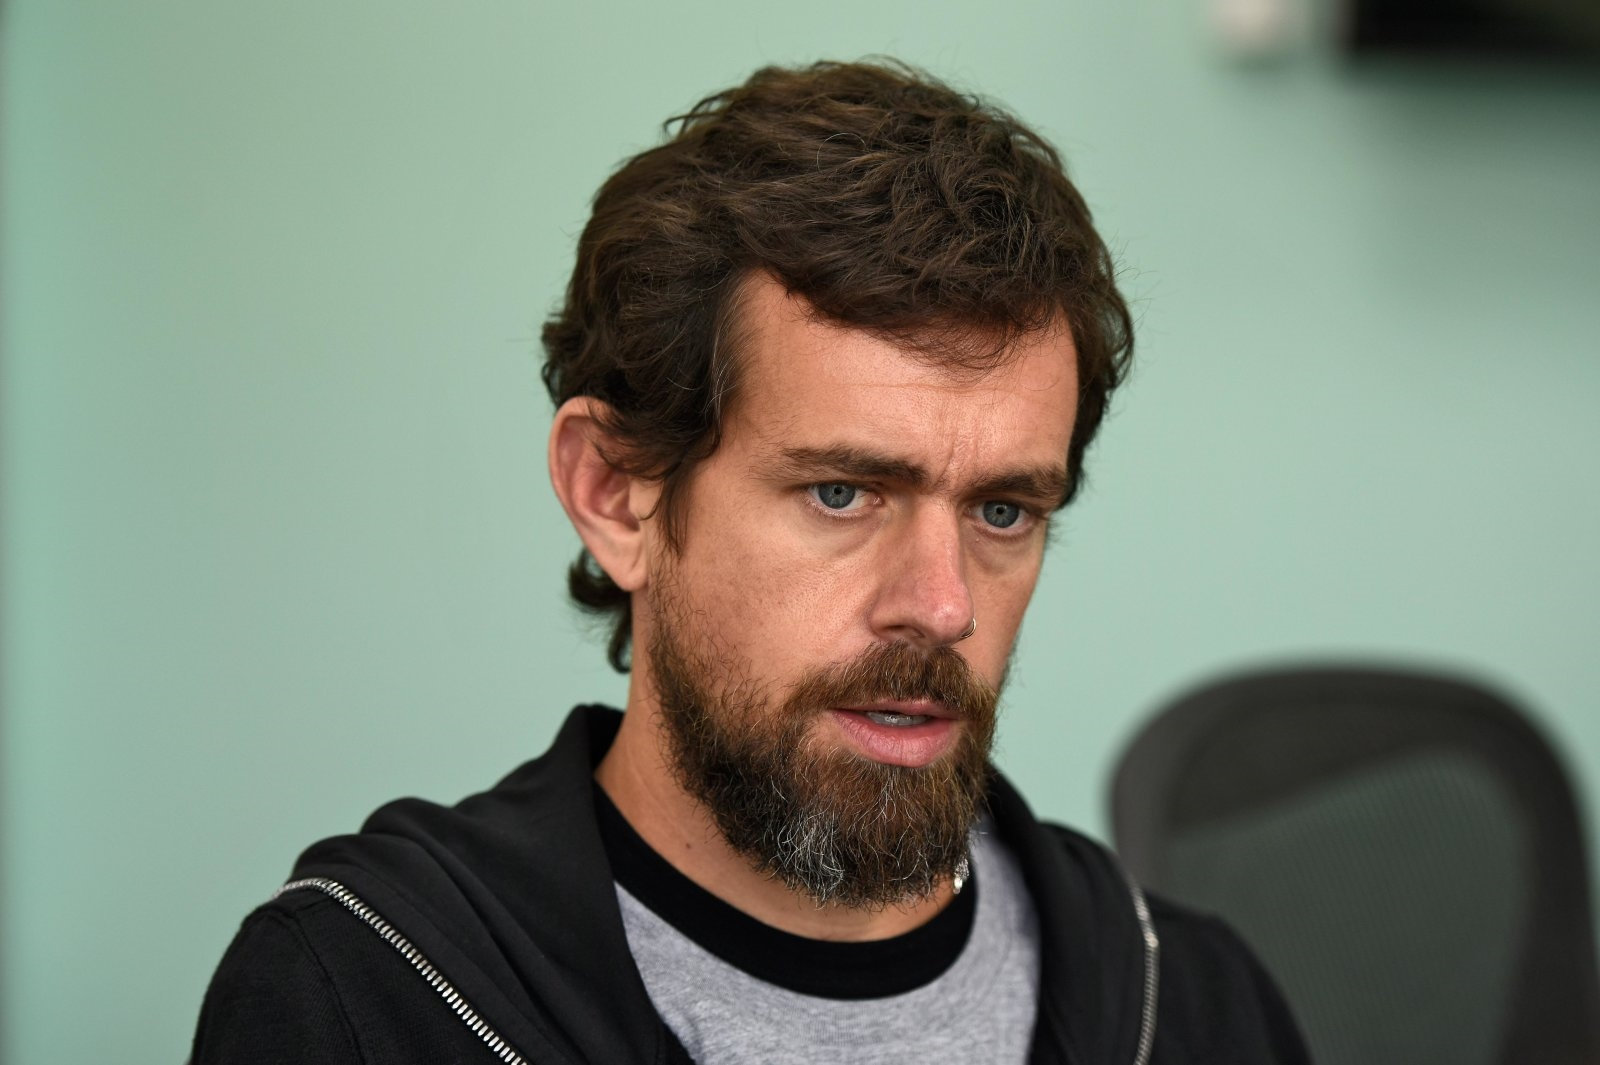 Police arrest member of group that hijacked Jack Dorsey's Twitter account | DeviceDaily.com